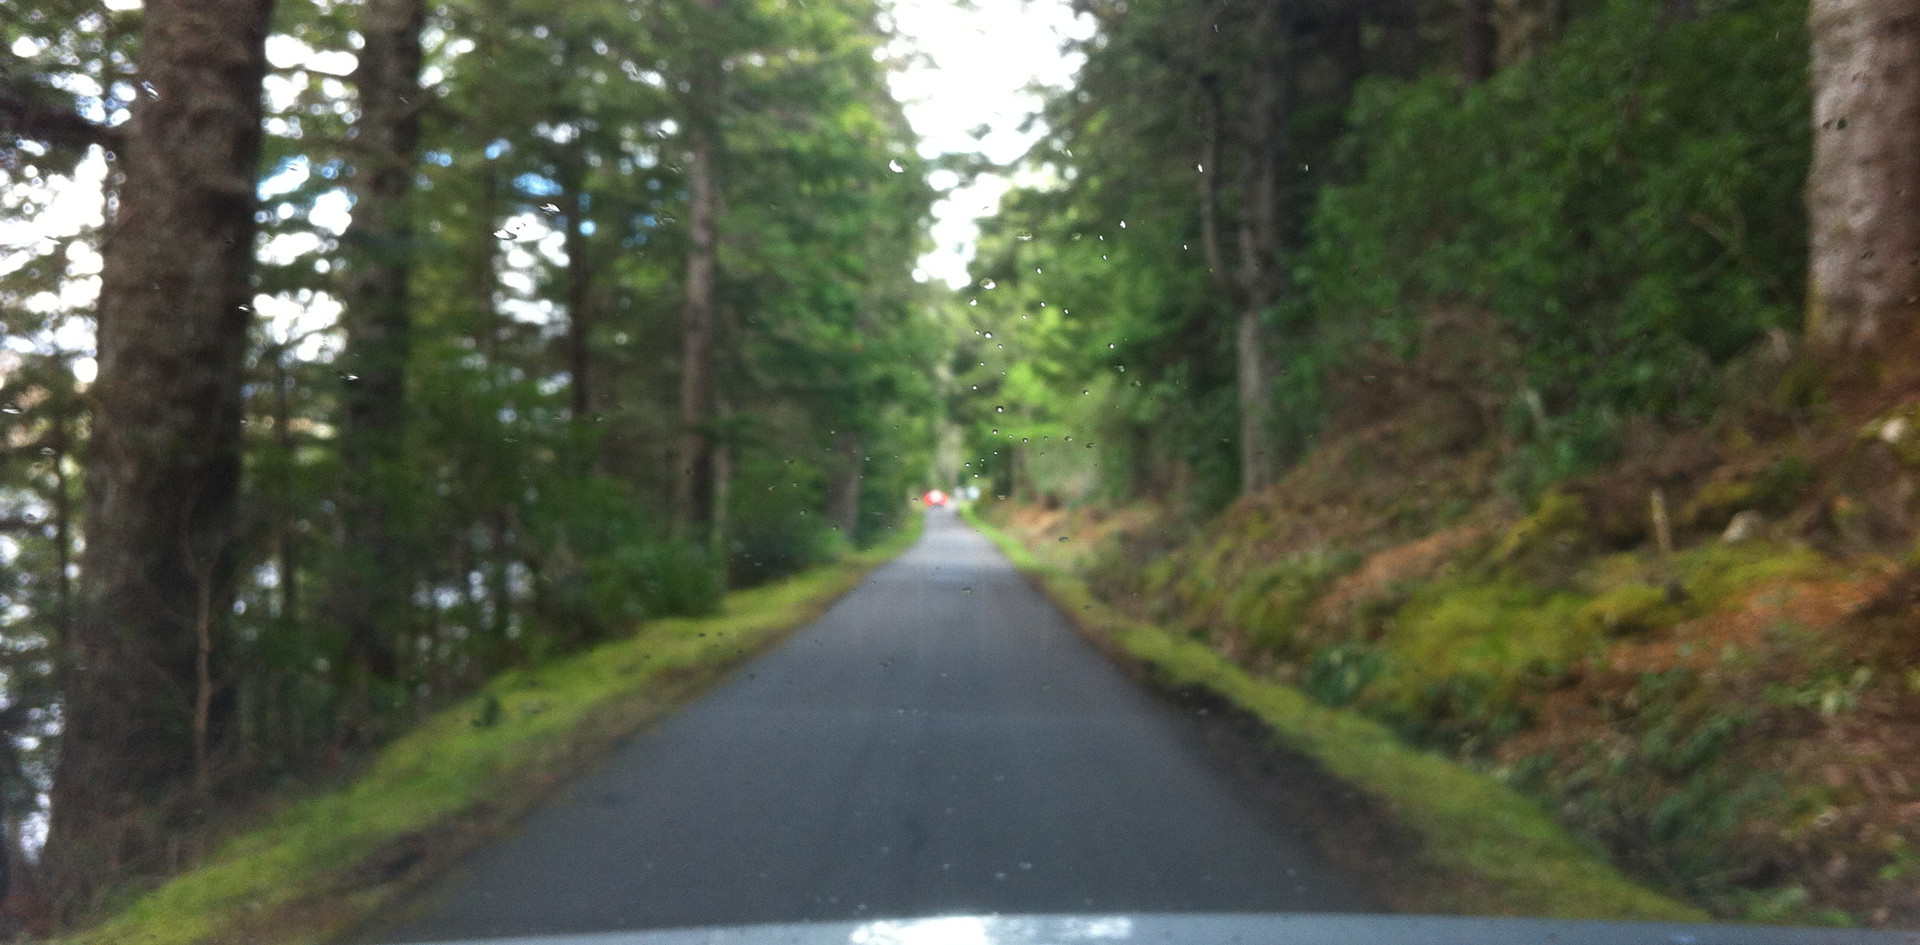 on the drive to Dunrobin castle